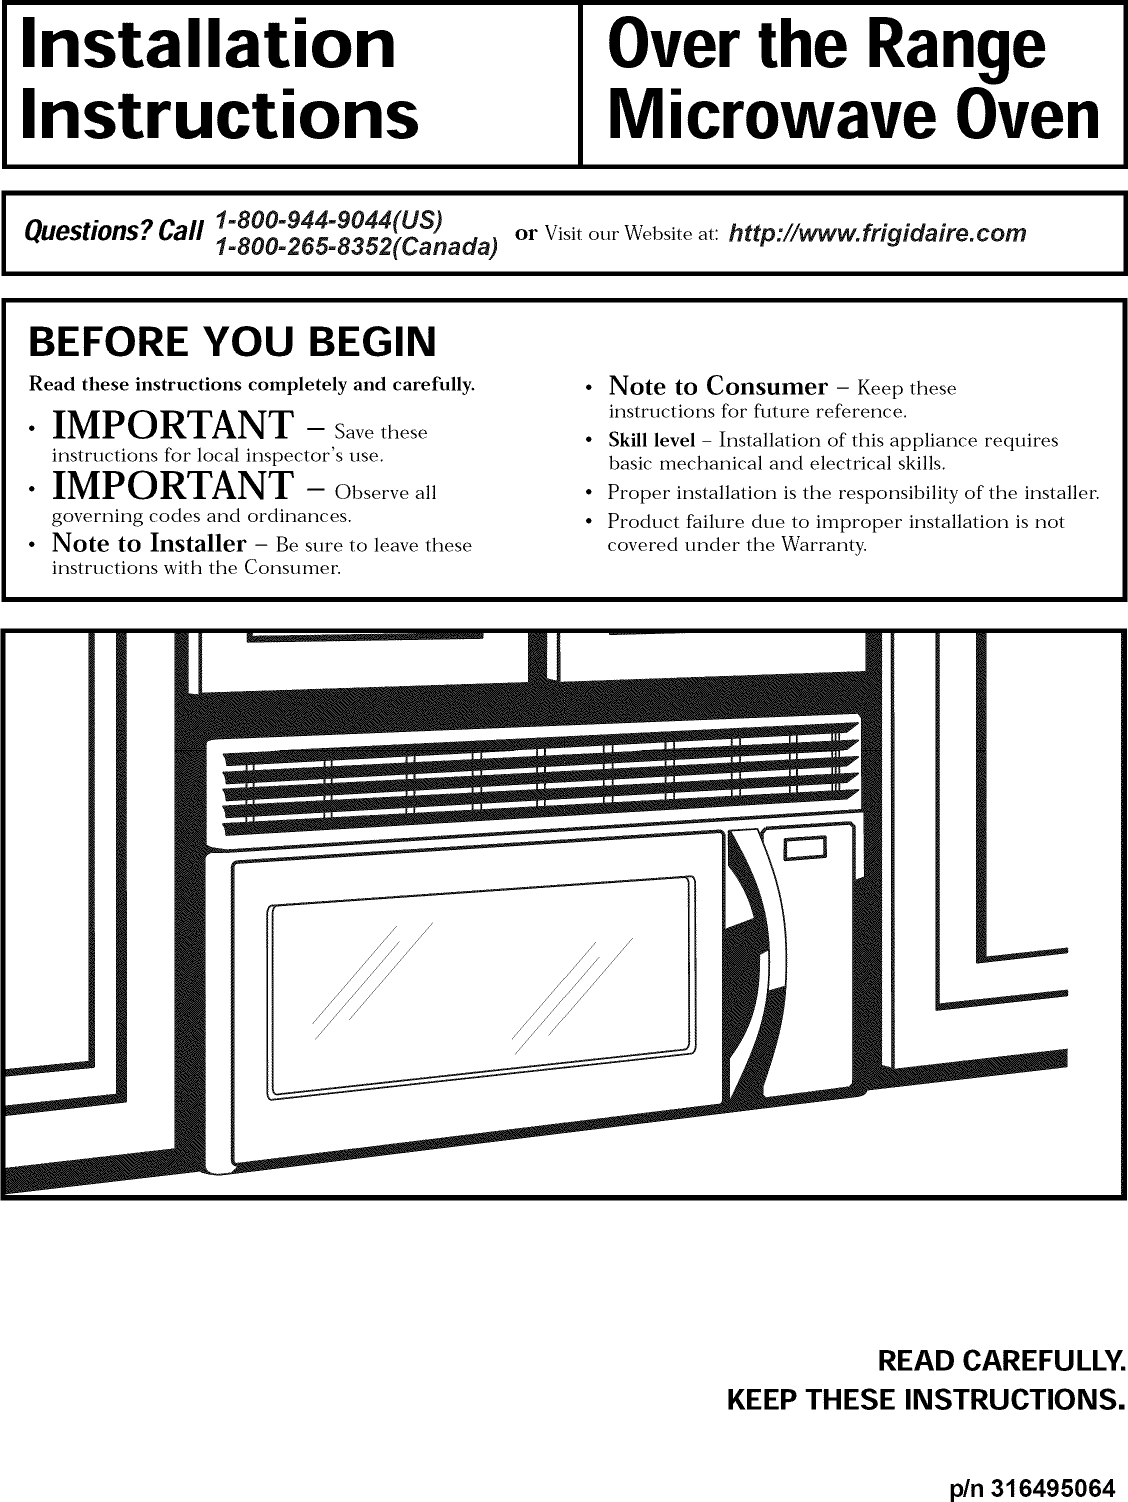 Frigidaire Microwave Installation Instructions Bestmicrowave